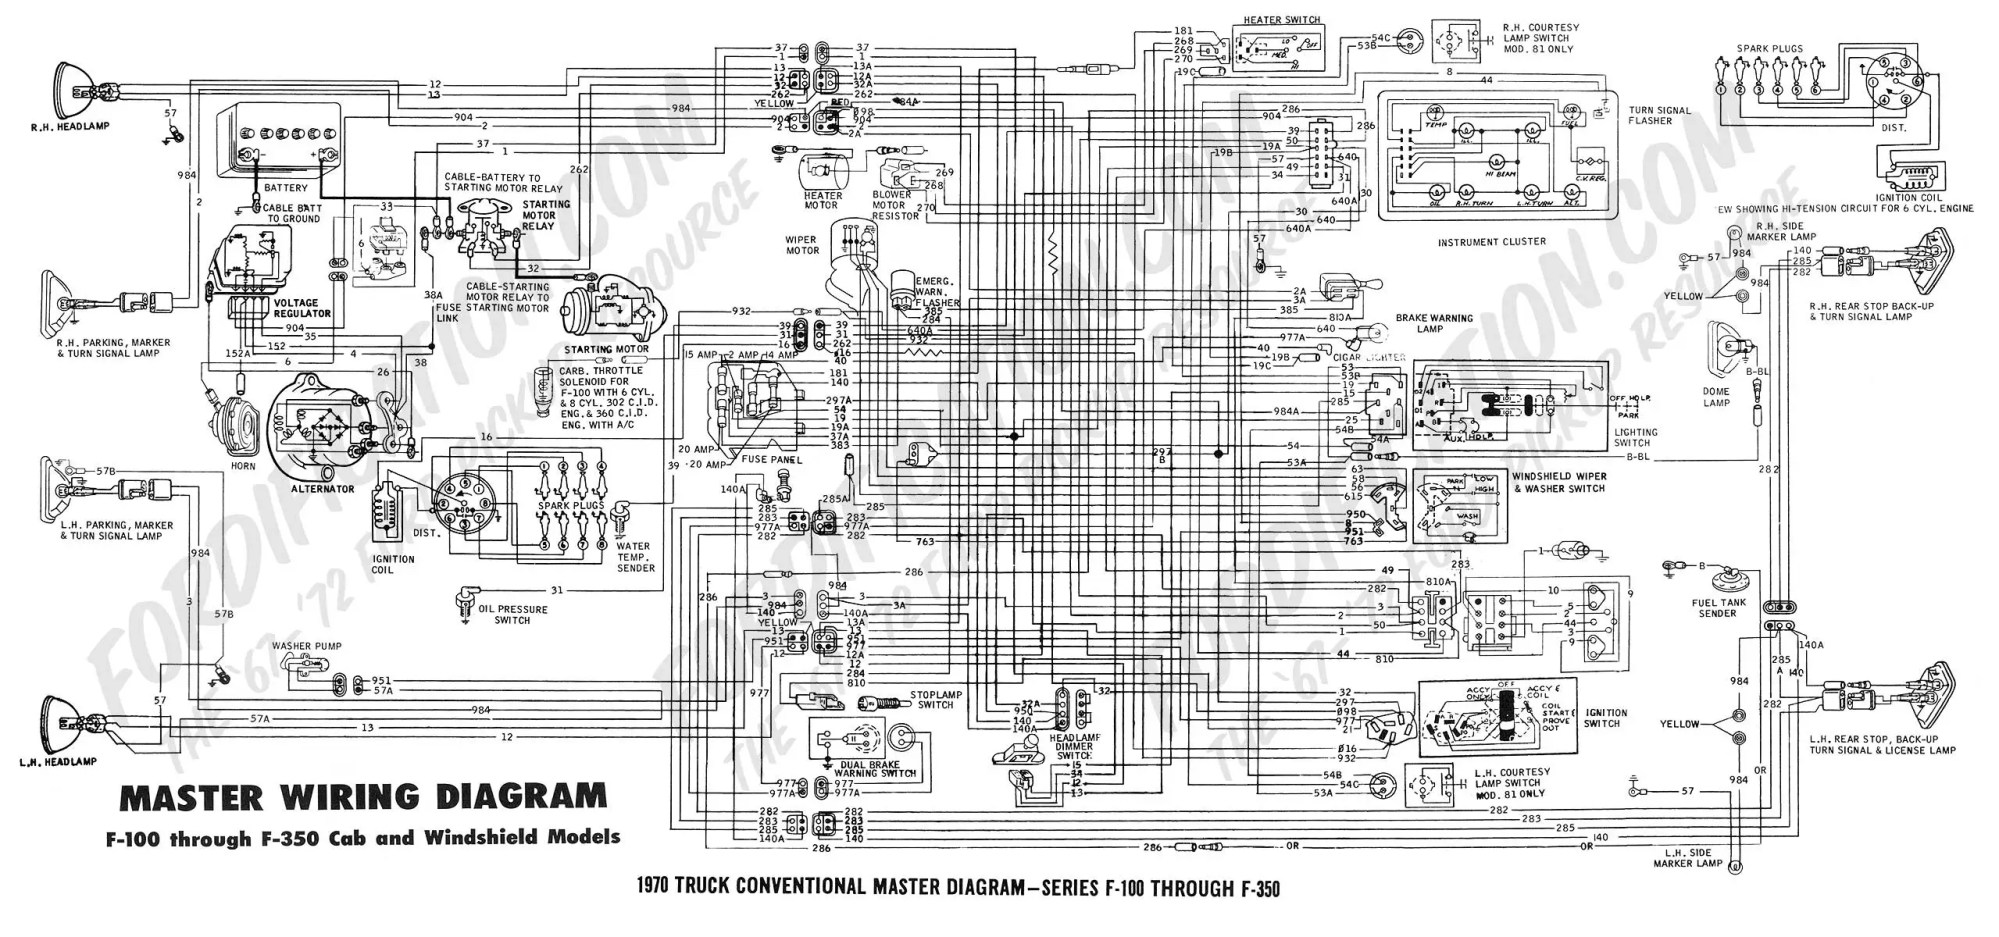 hight resolution of 1970 f100 wiring diagram wiring diagram rows 1970 ford f100 wiring diagram wiring diagrams 1970 ford